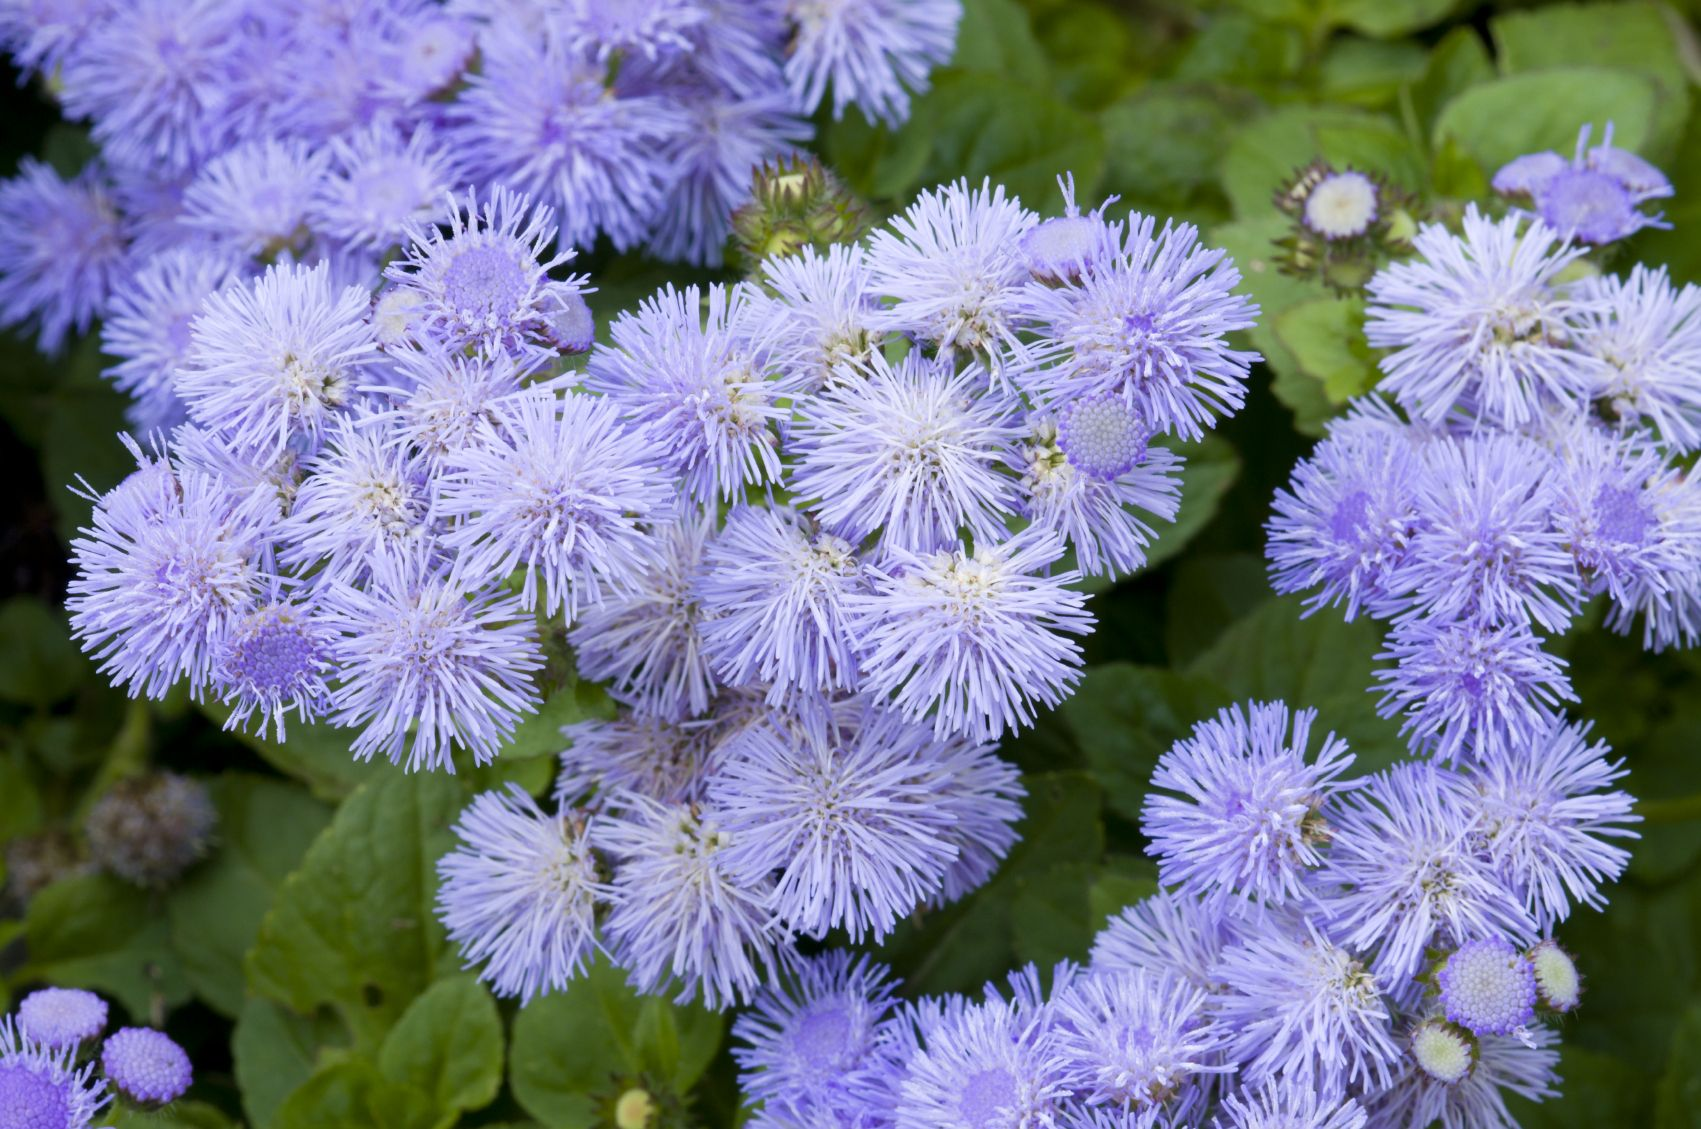 Growing Ageratum Flower How To Plant Ageratum Blue Flowers Garden Mosquito Repelling Plants Plants